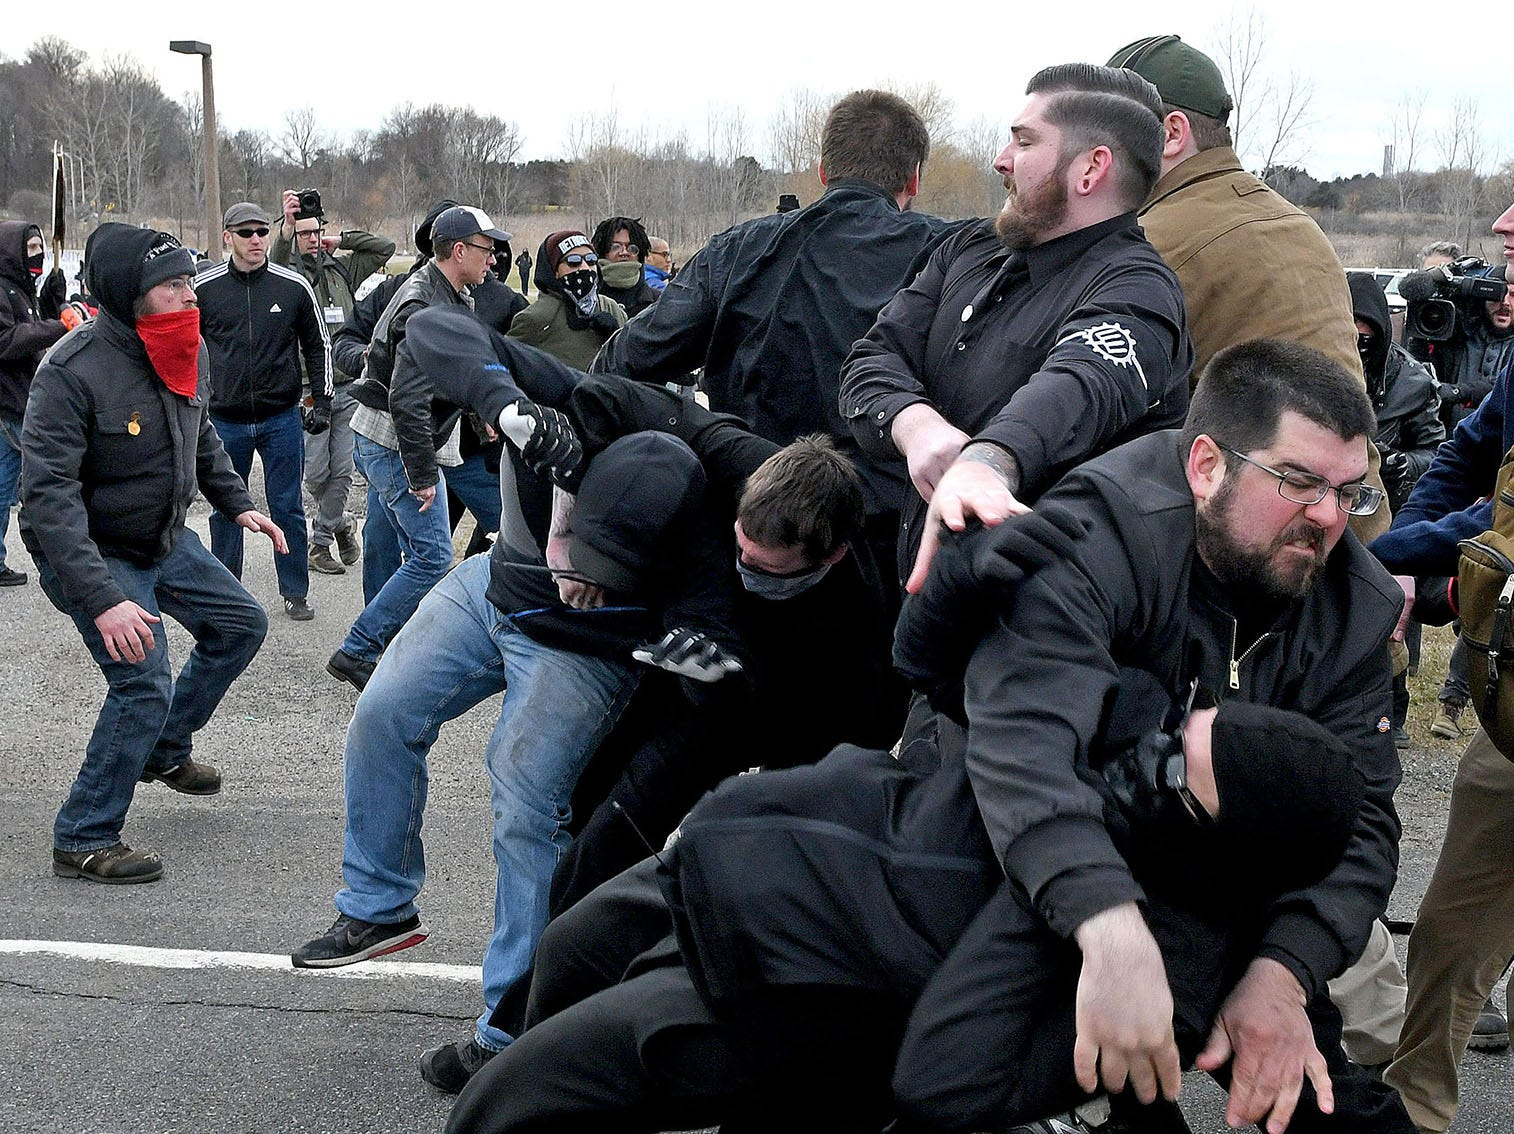 Protesters clash with supporters of white supremacist Richard Spencer outside the MSU Pavilion where Spencer was speaking on March 6, 2018.  At right, Matthew Heimbach, the leader of the Traditional Workers Party, throws an anti-Richard Spencer protester to the ground. Three MSU police officers and one state trooper were injured, and 25 people were arrested.